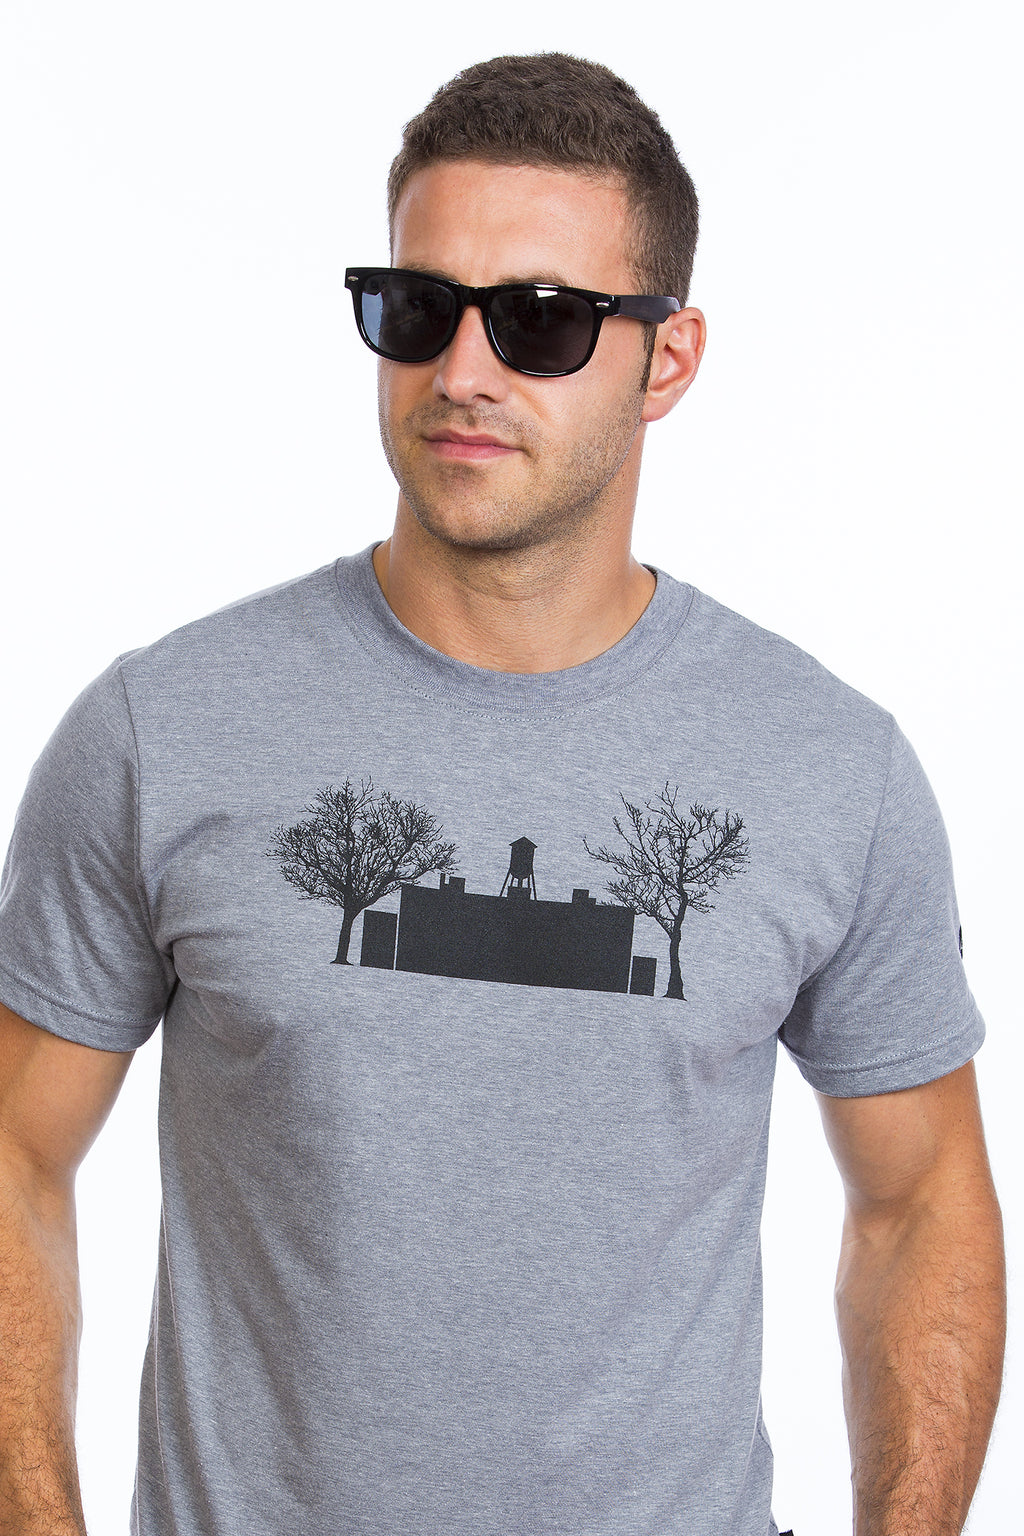 Chateau d'eau Mile End Plateau Mont-Royal gris Homme